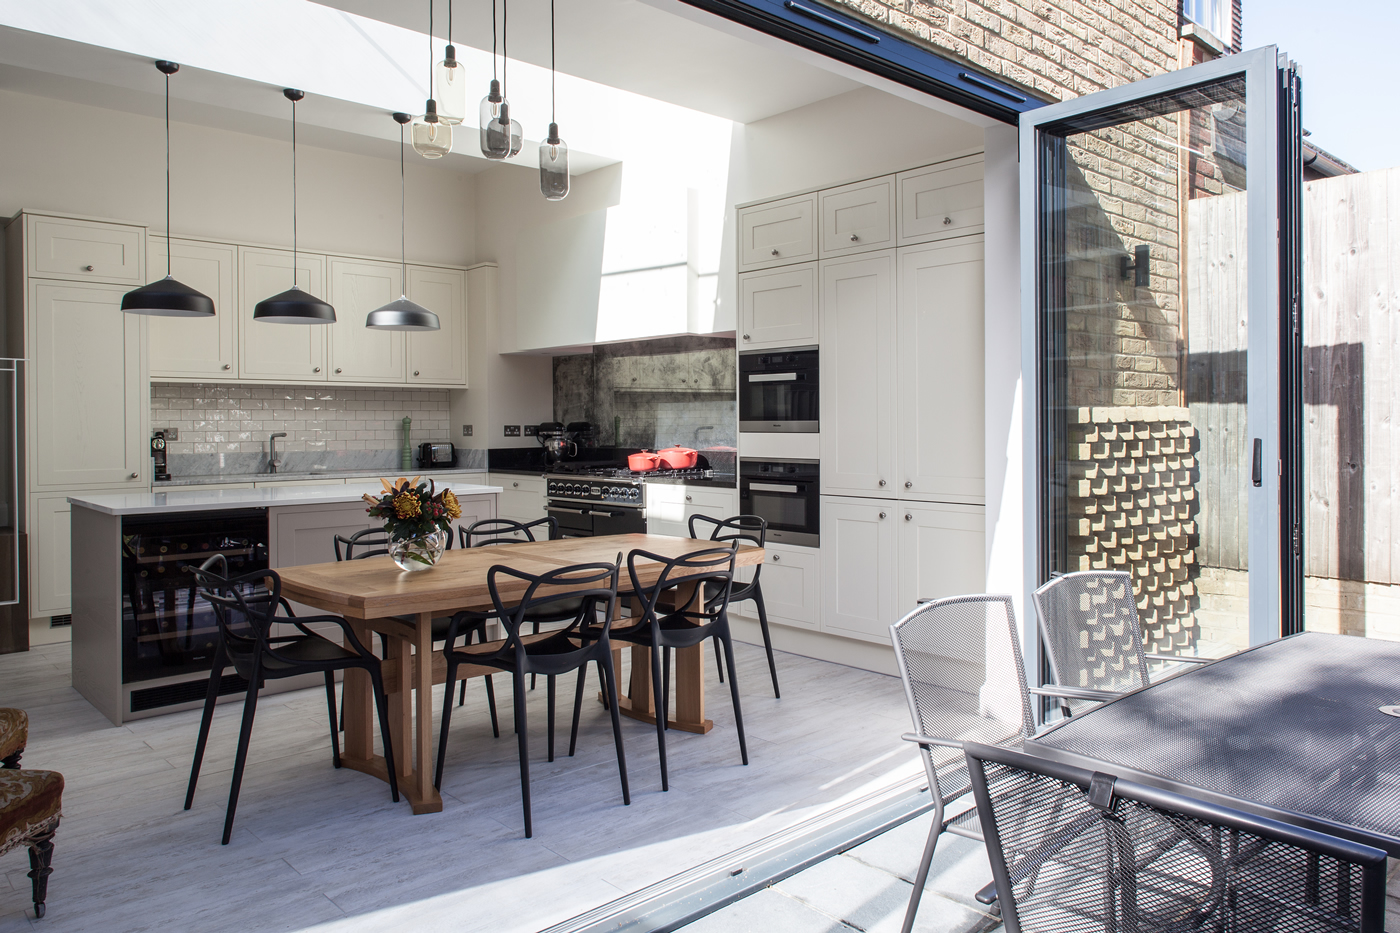 Harcourt Road East – Kitchen / diner extension